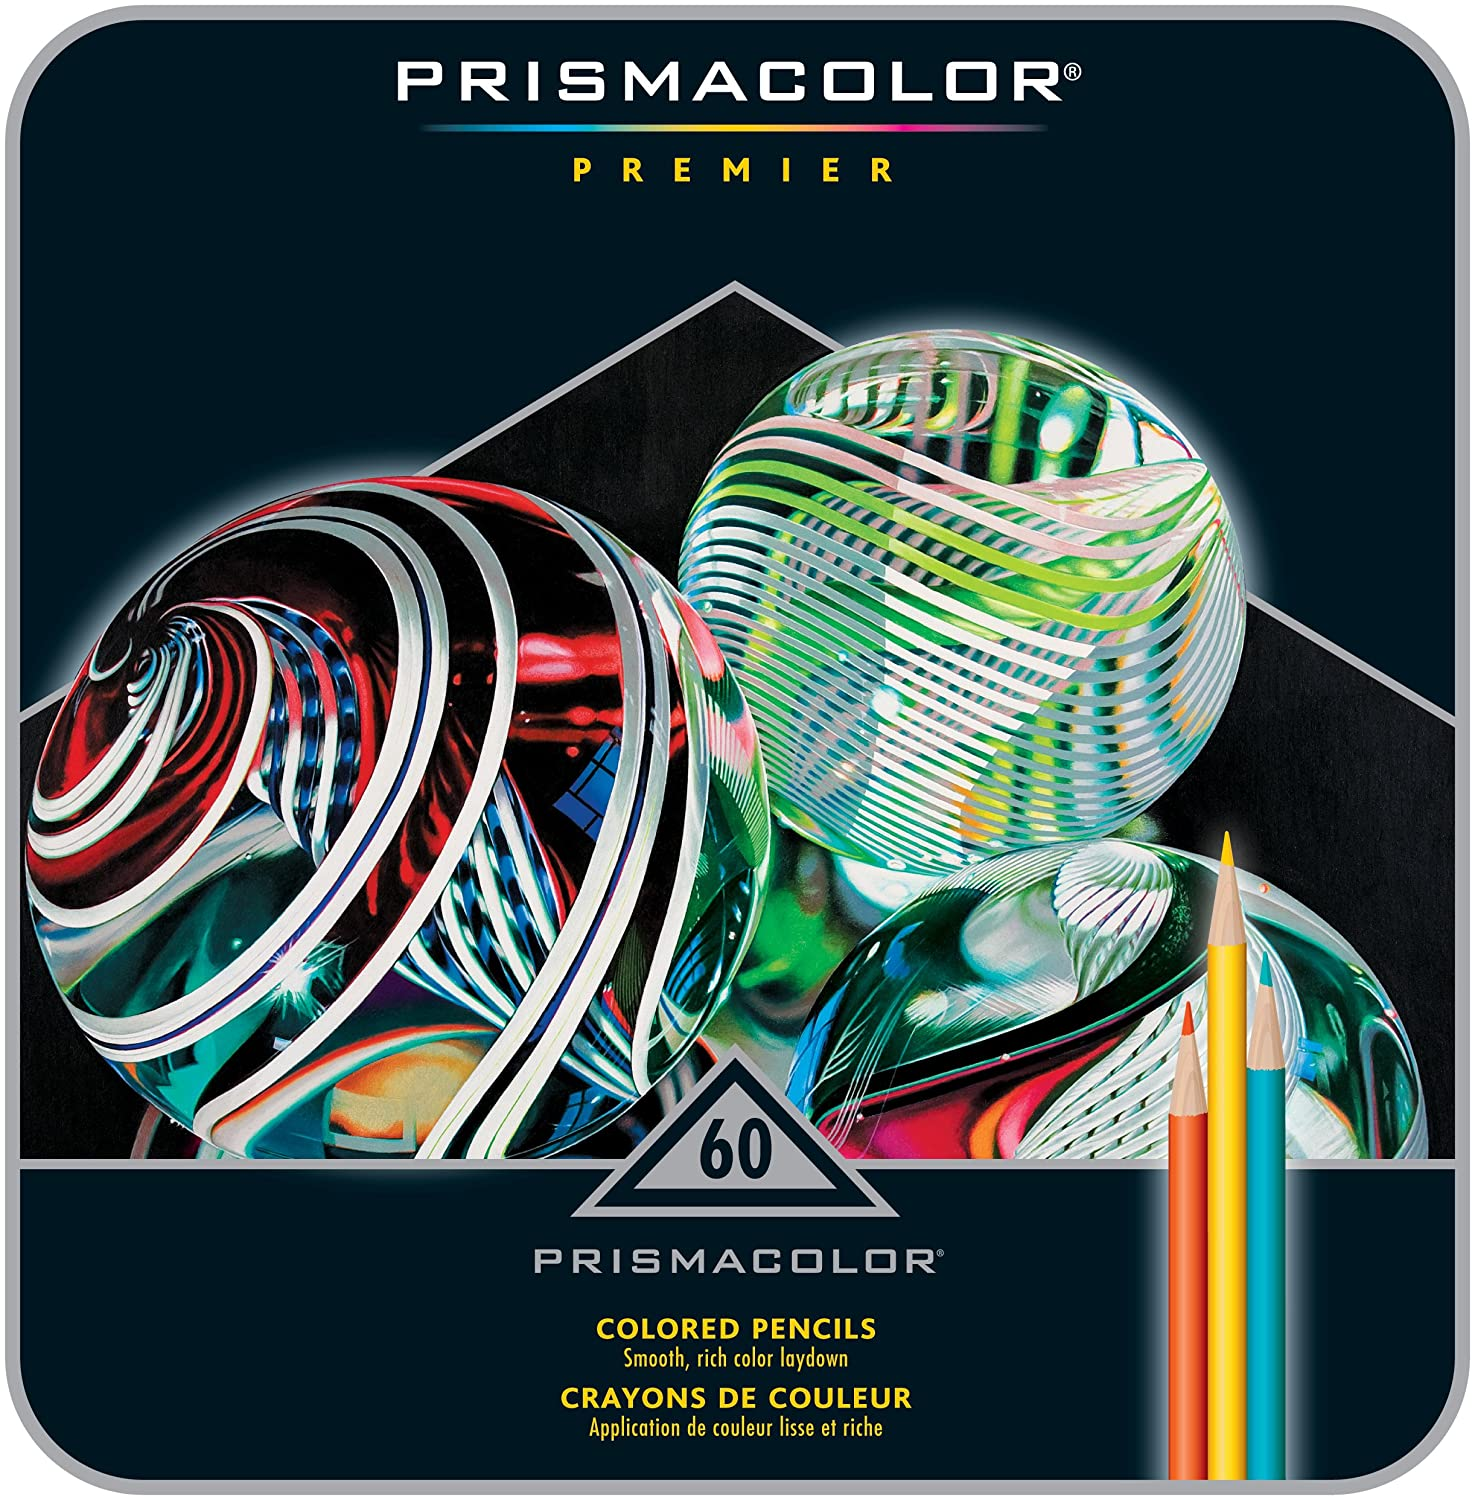 PRISMACOLOR PREMIER Pencil, Colored Pencils, Set of 60, Assorted ...